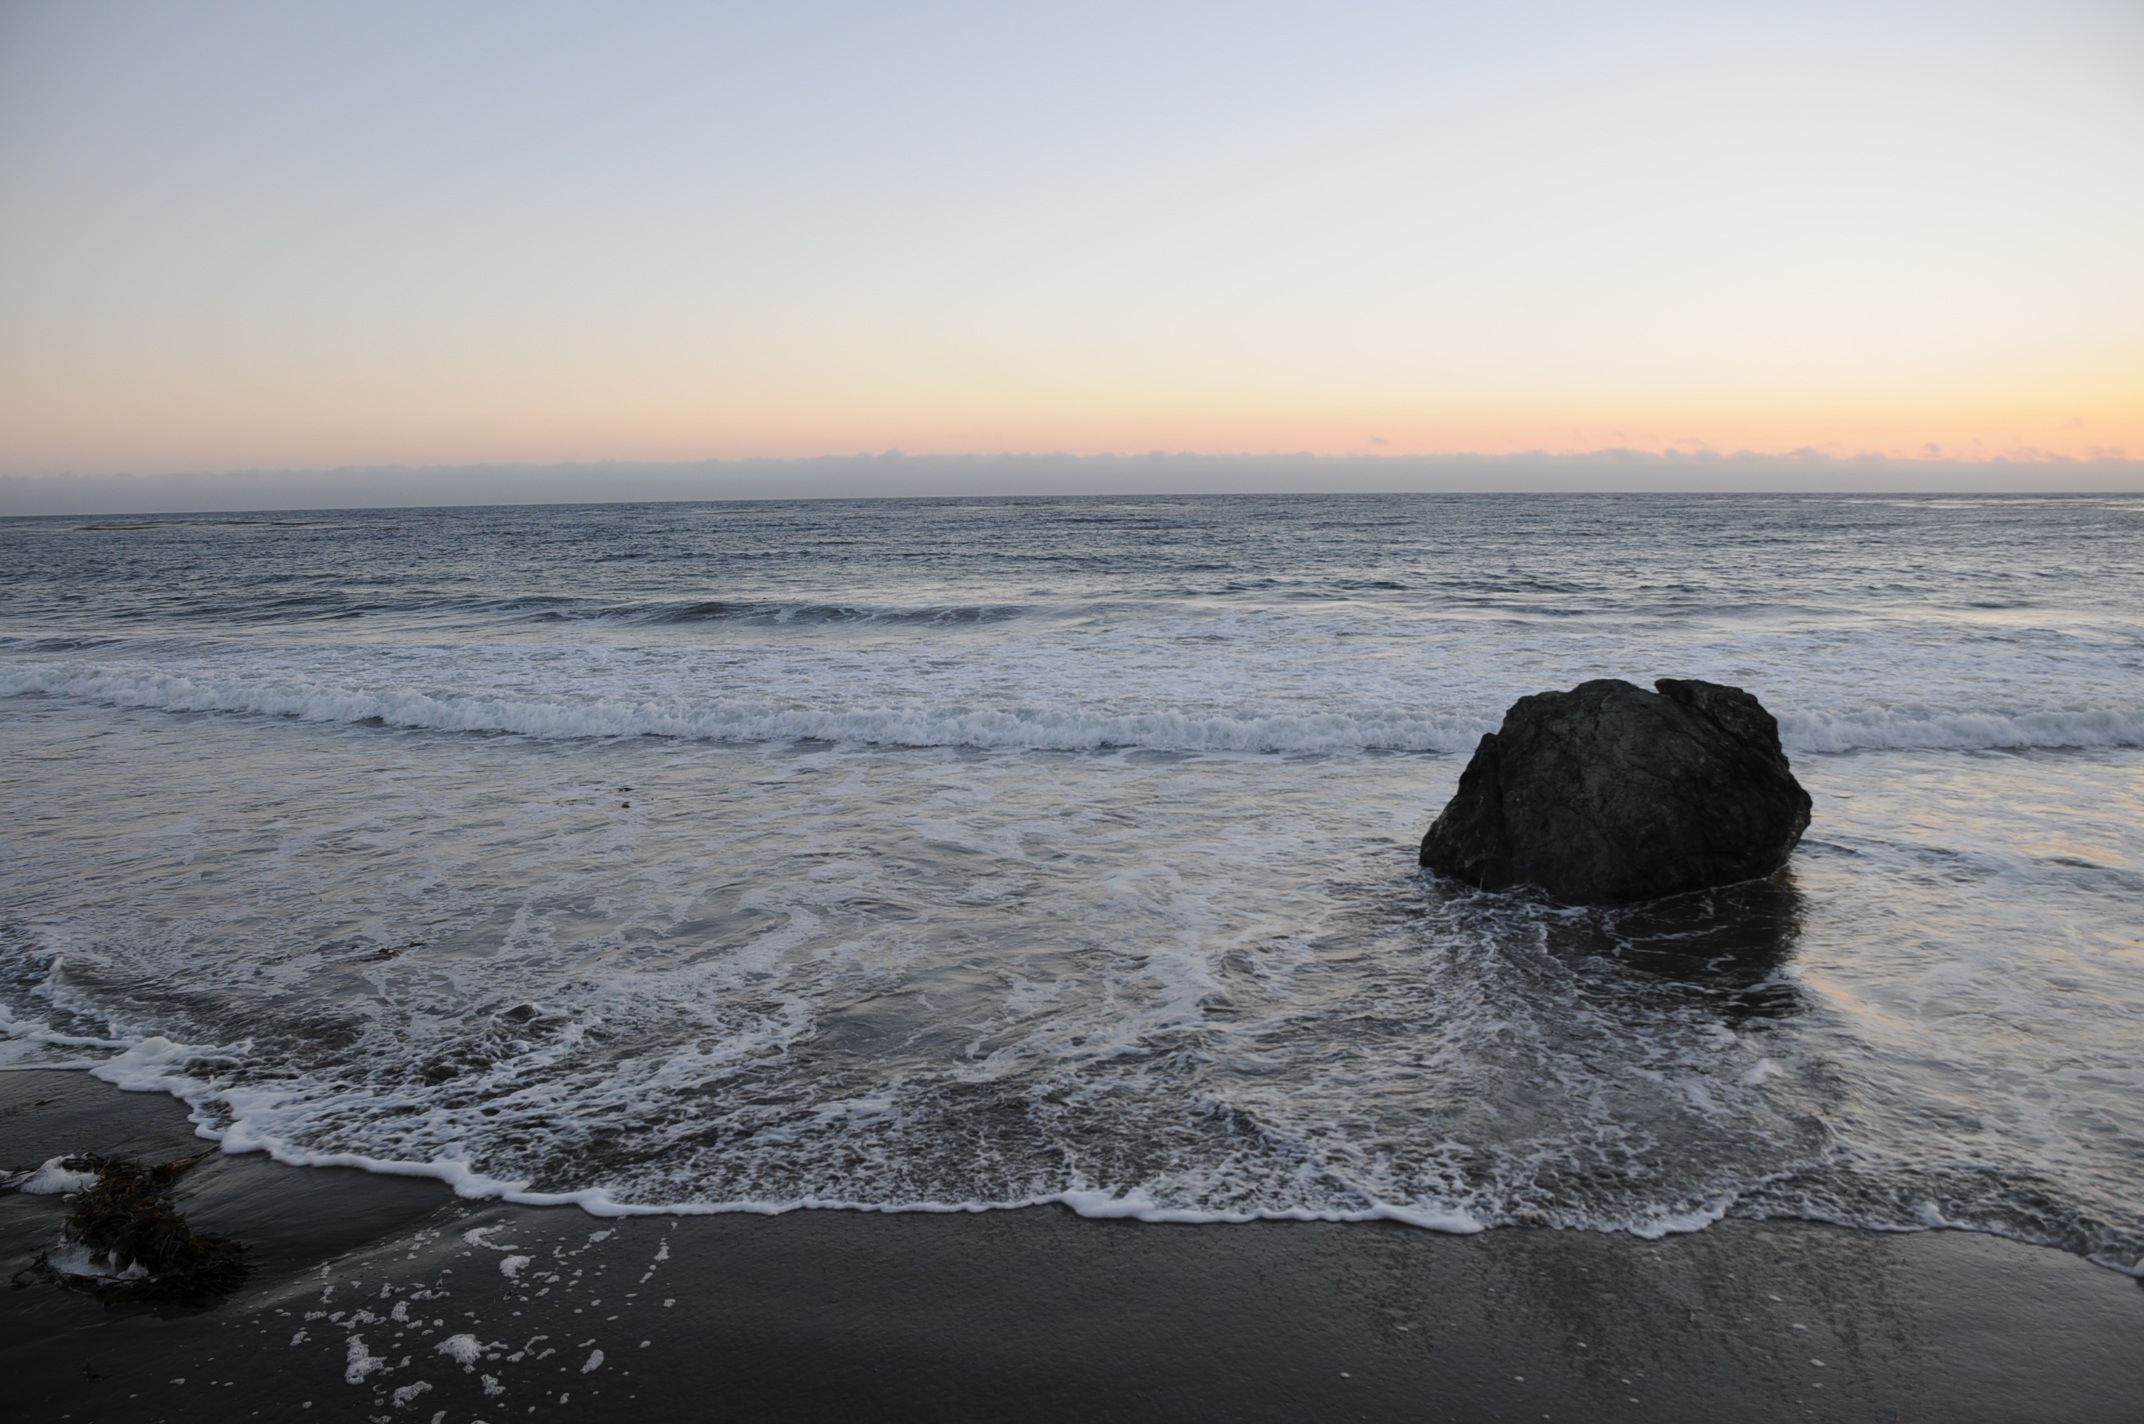 California coastline at the end of the day